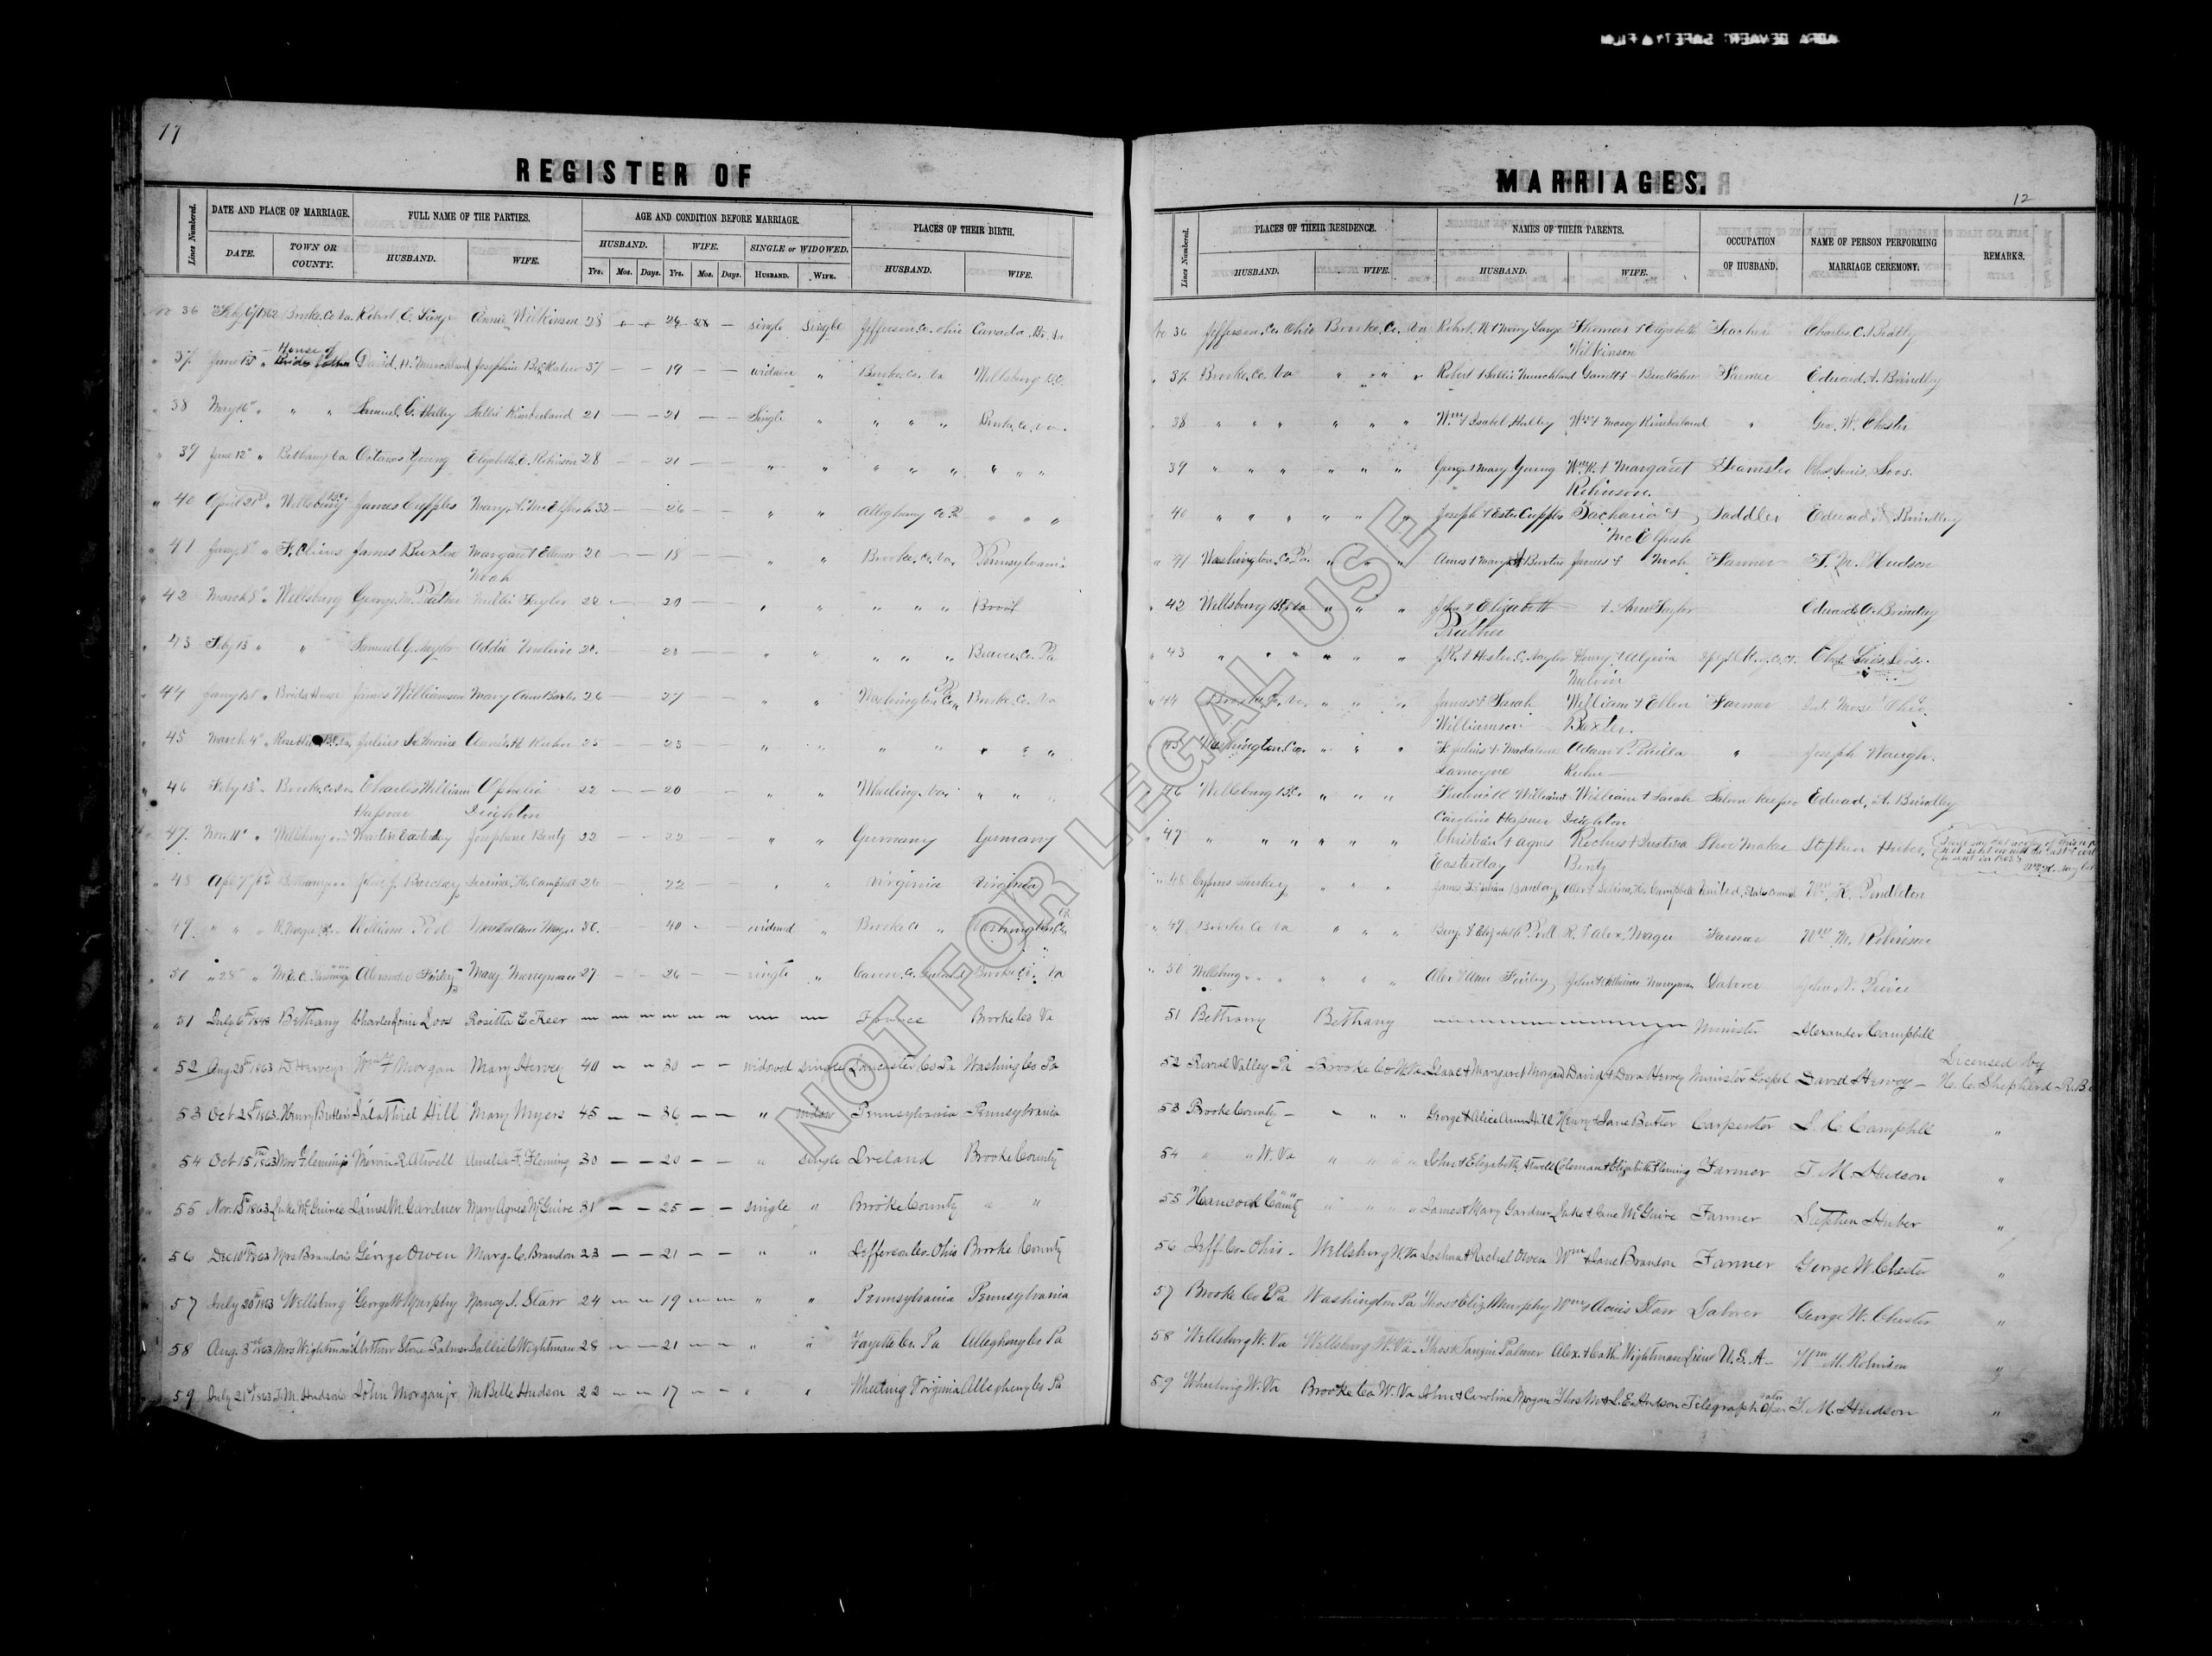 1863 Marriage Certificate